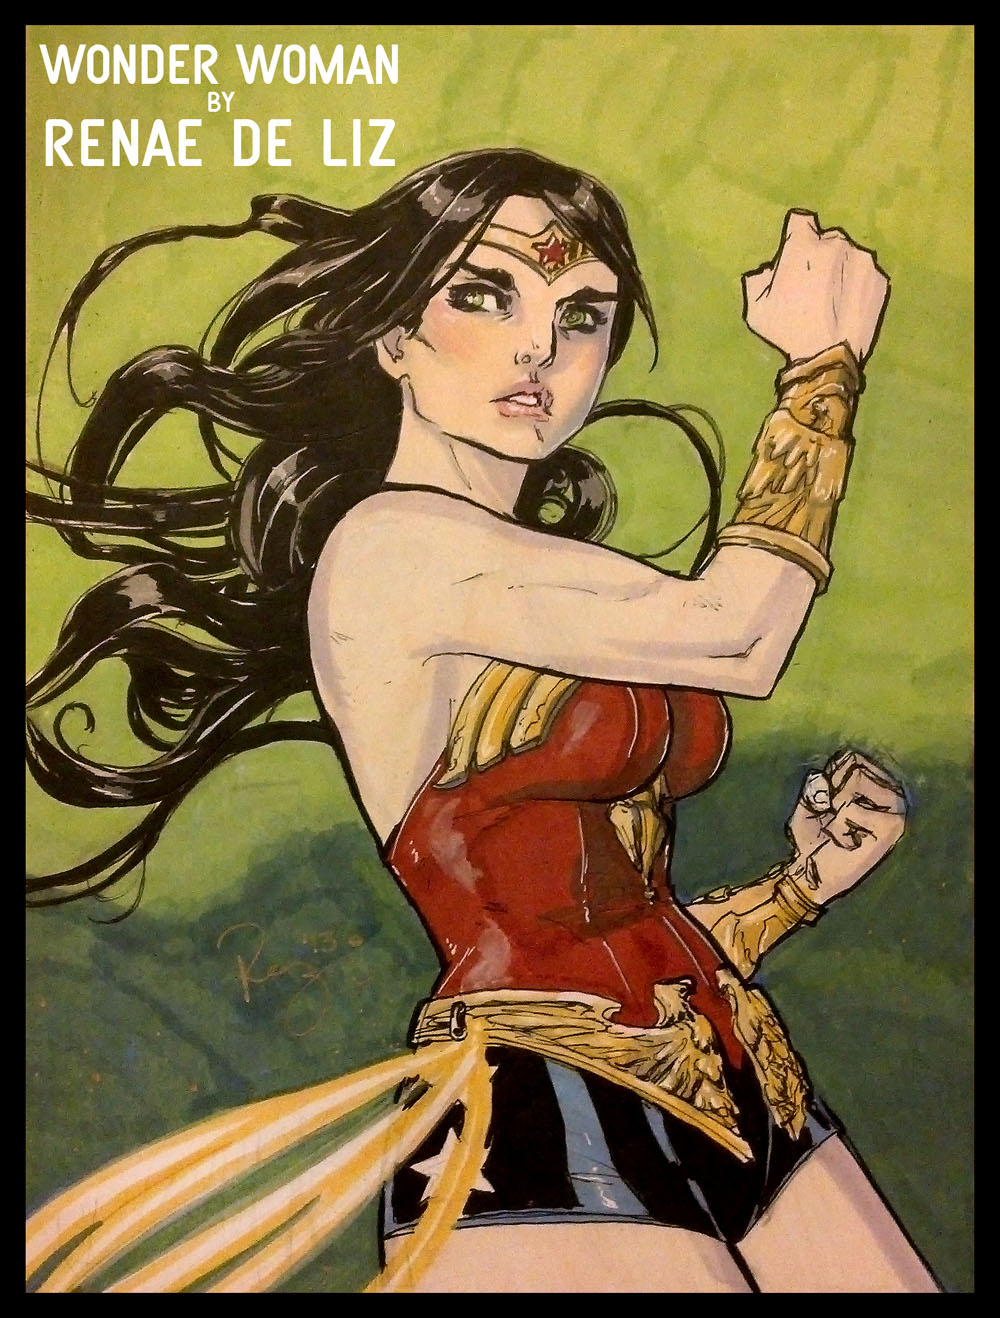 WONDER WOMAN by RENAE DE LIZ - FOR SALE!